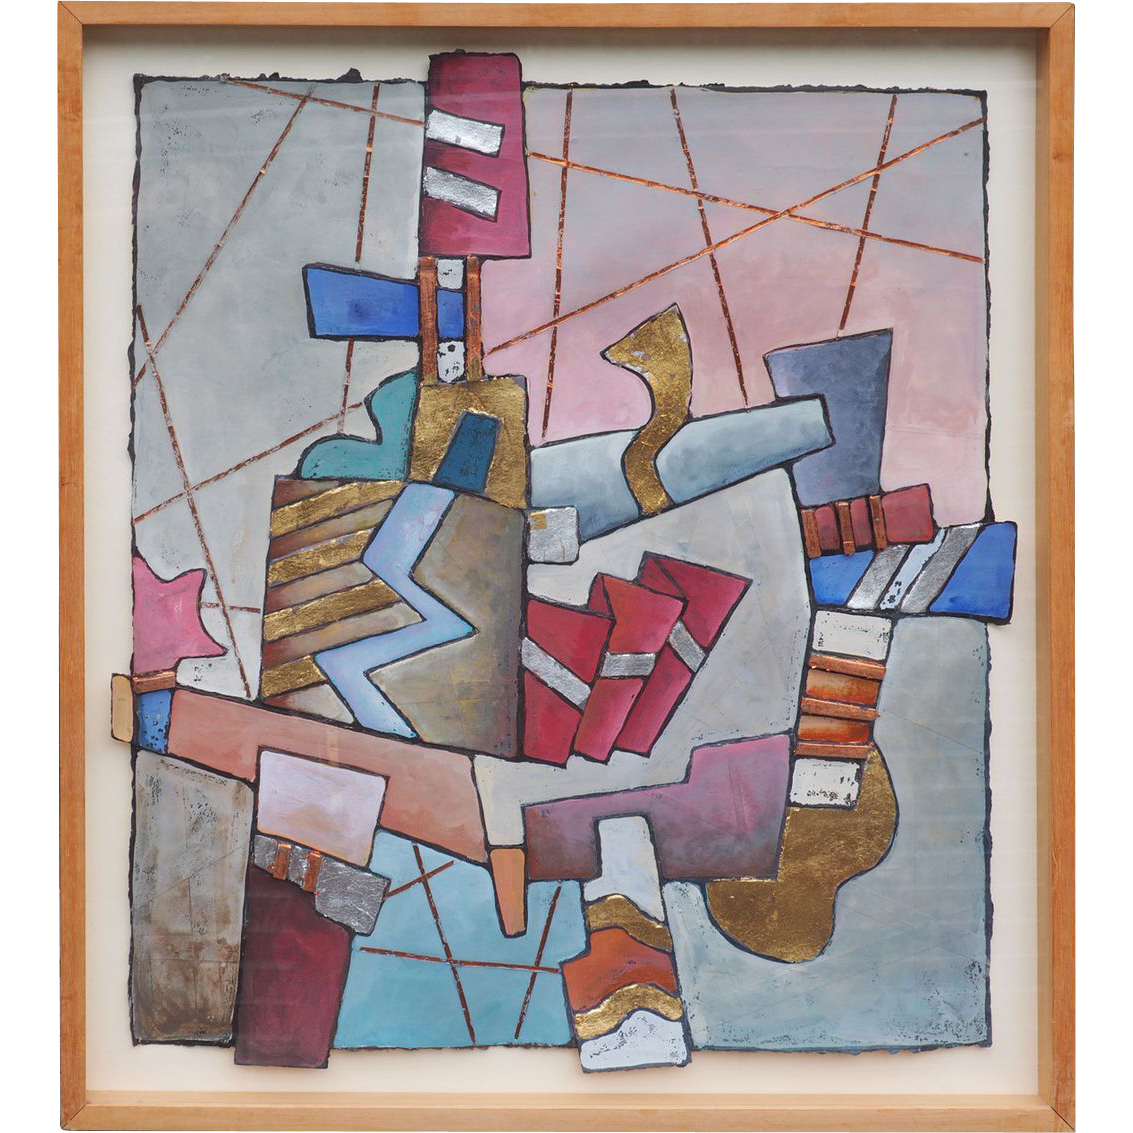 Geometric Song vintage abstract mixed media painting by Tom Bianchi